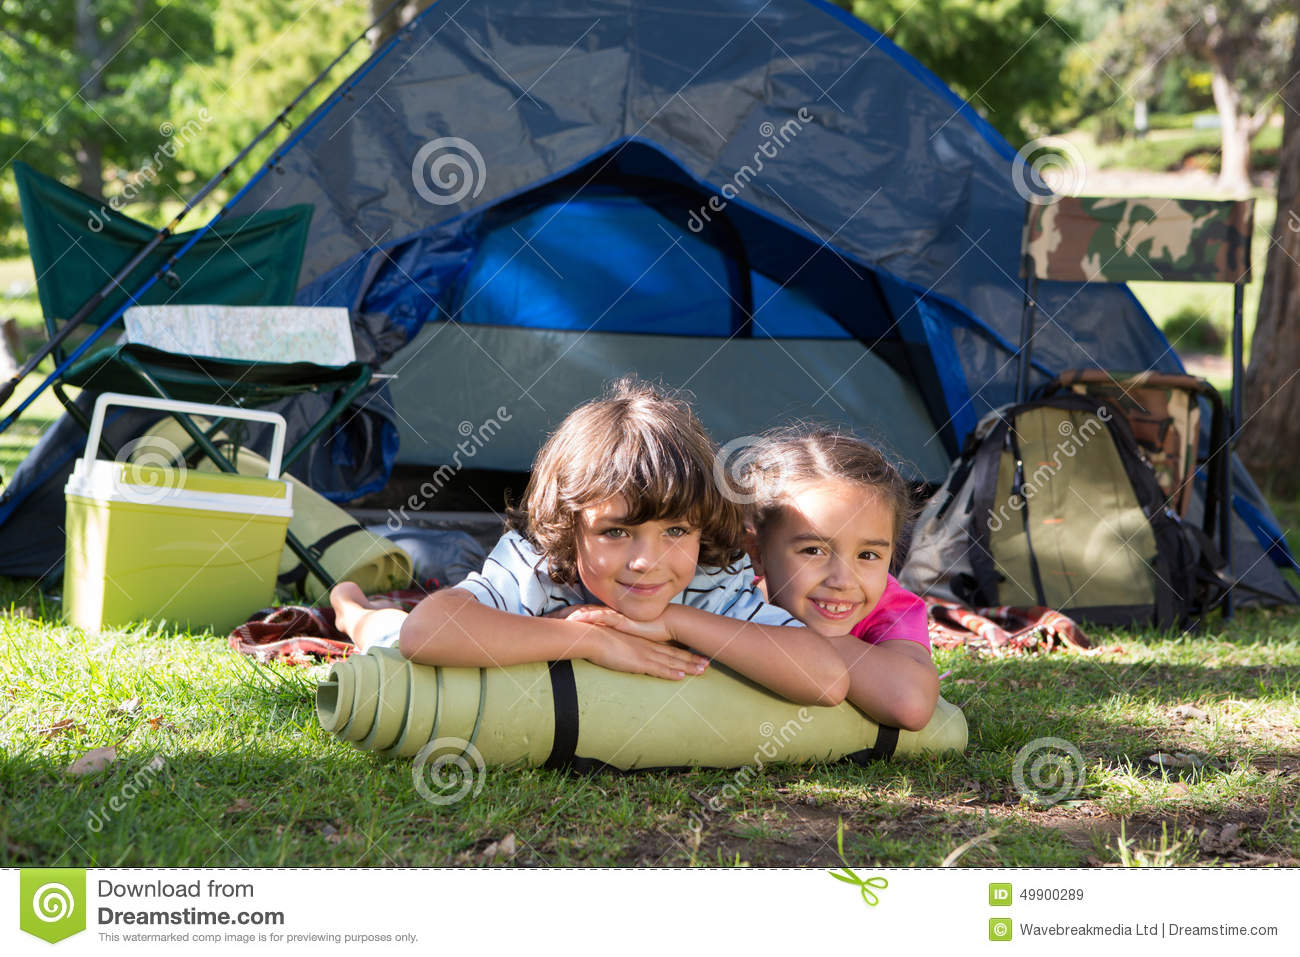 a camping trip A complete outdoor guide with information, tips, how-to's, activities, and checklists for planning a fun camping trip for the entire family.